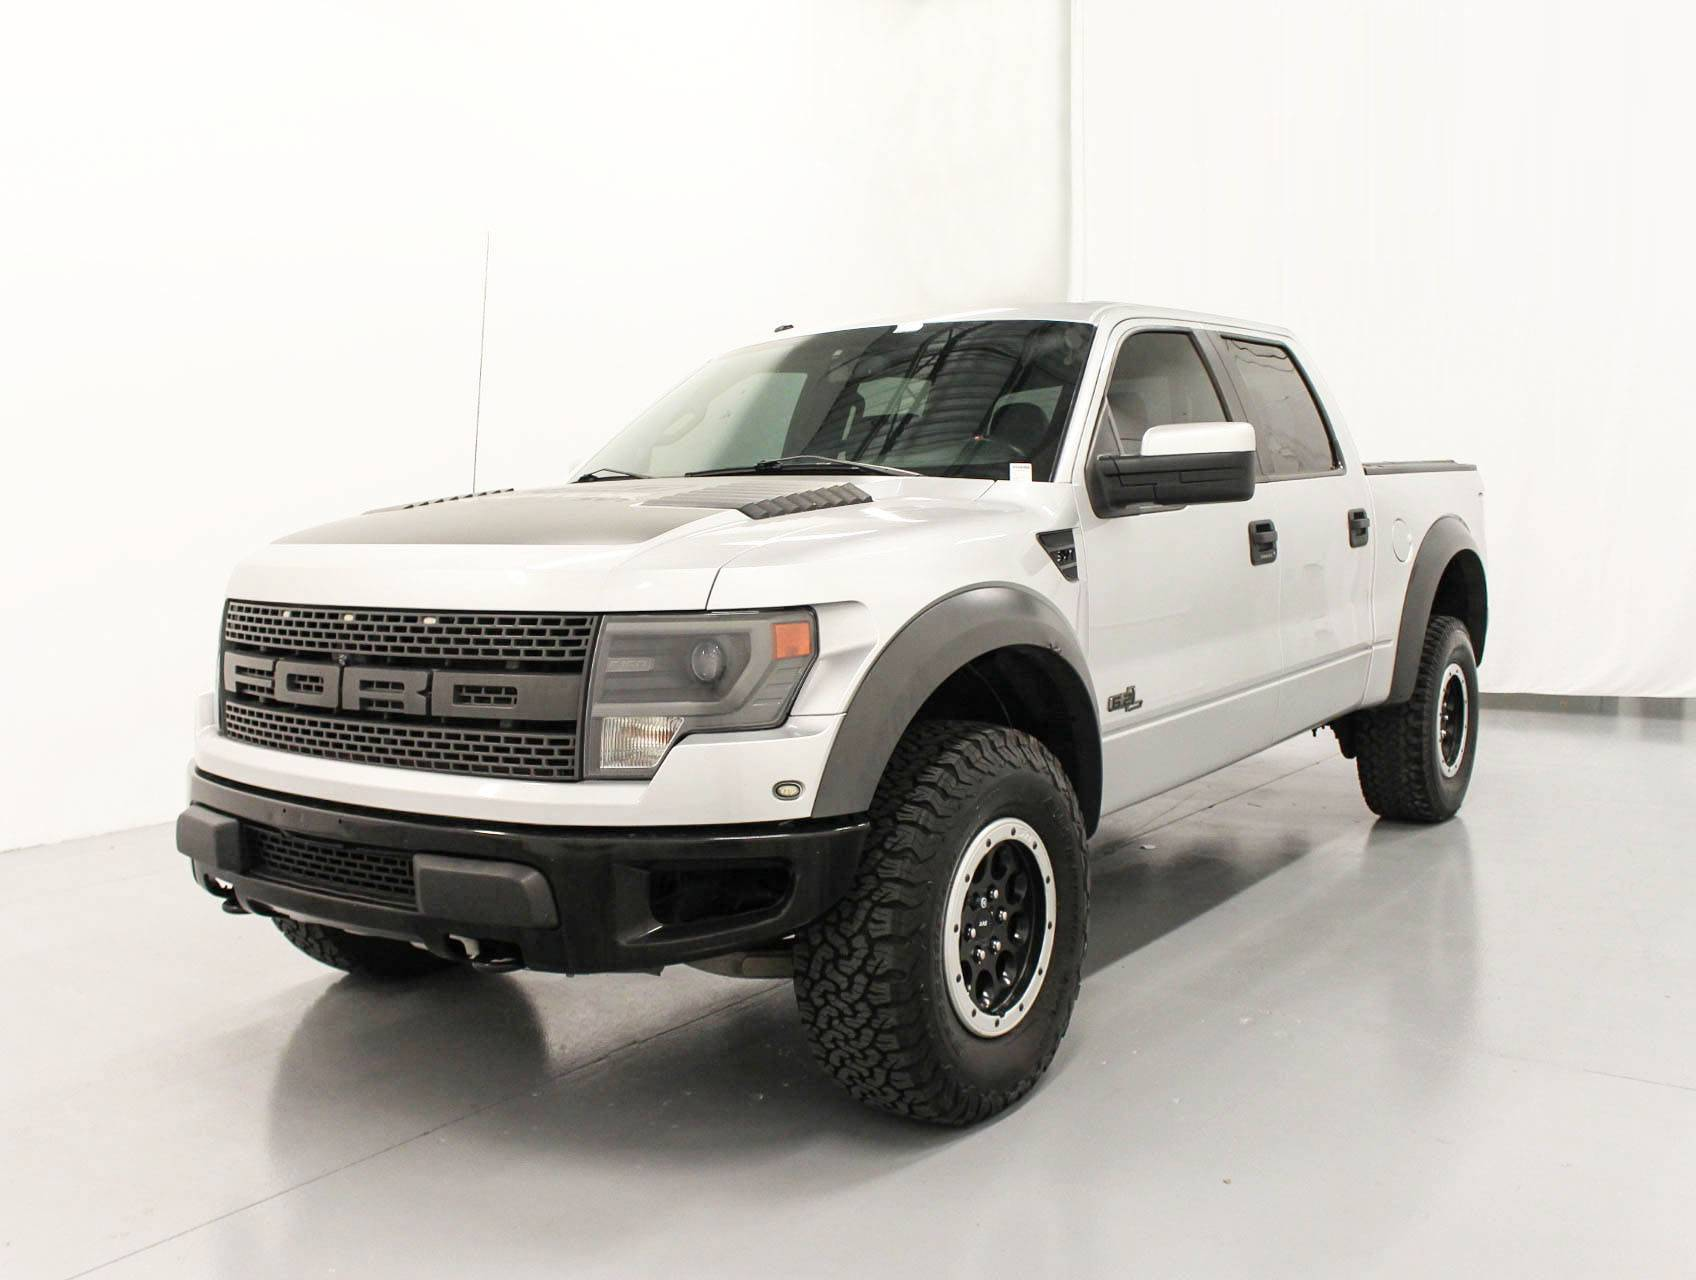 Used Ford 4x4 Trucks For Sale >> Used 2014 Ford F 150 Svt Raptor 4x4 Truck For Sale In Miami